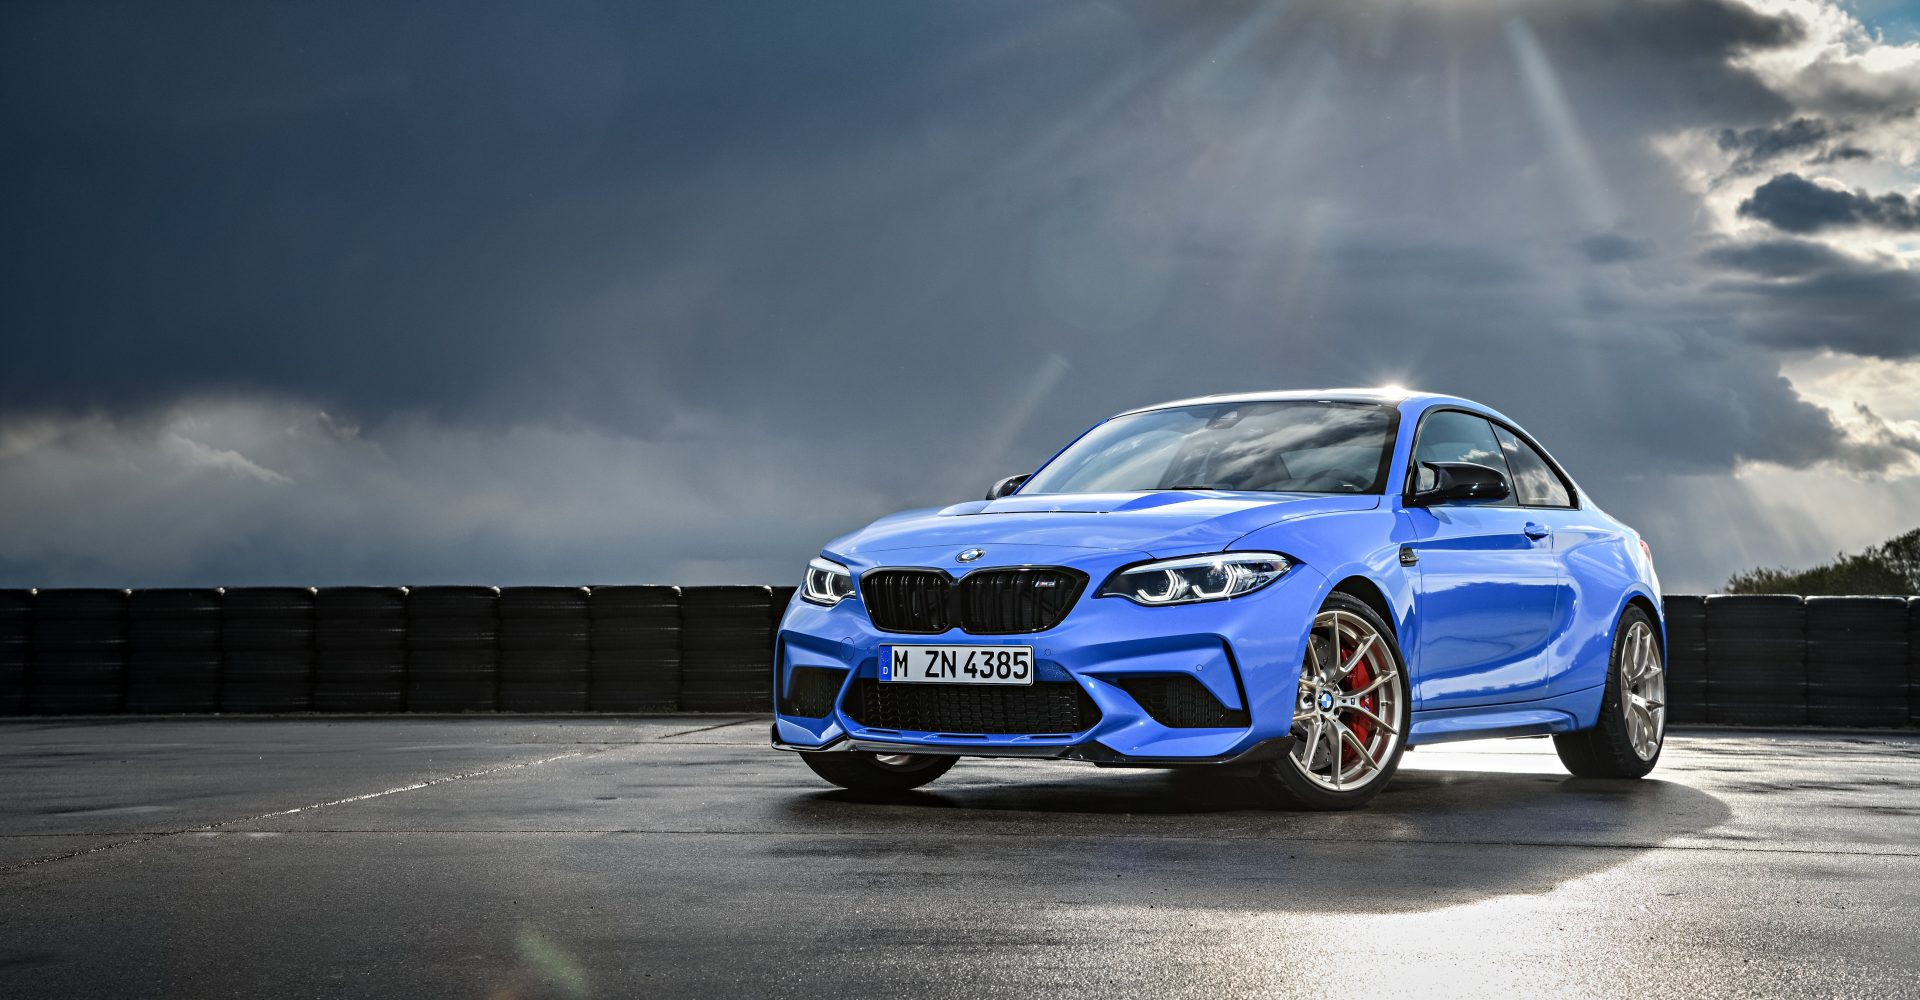 The BMW M2 CS is a 444bhp, £75,000 run-out special